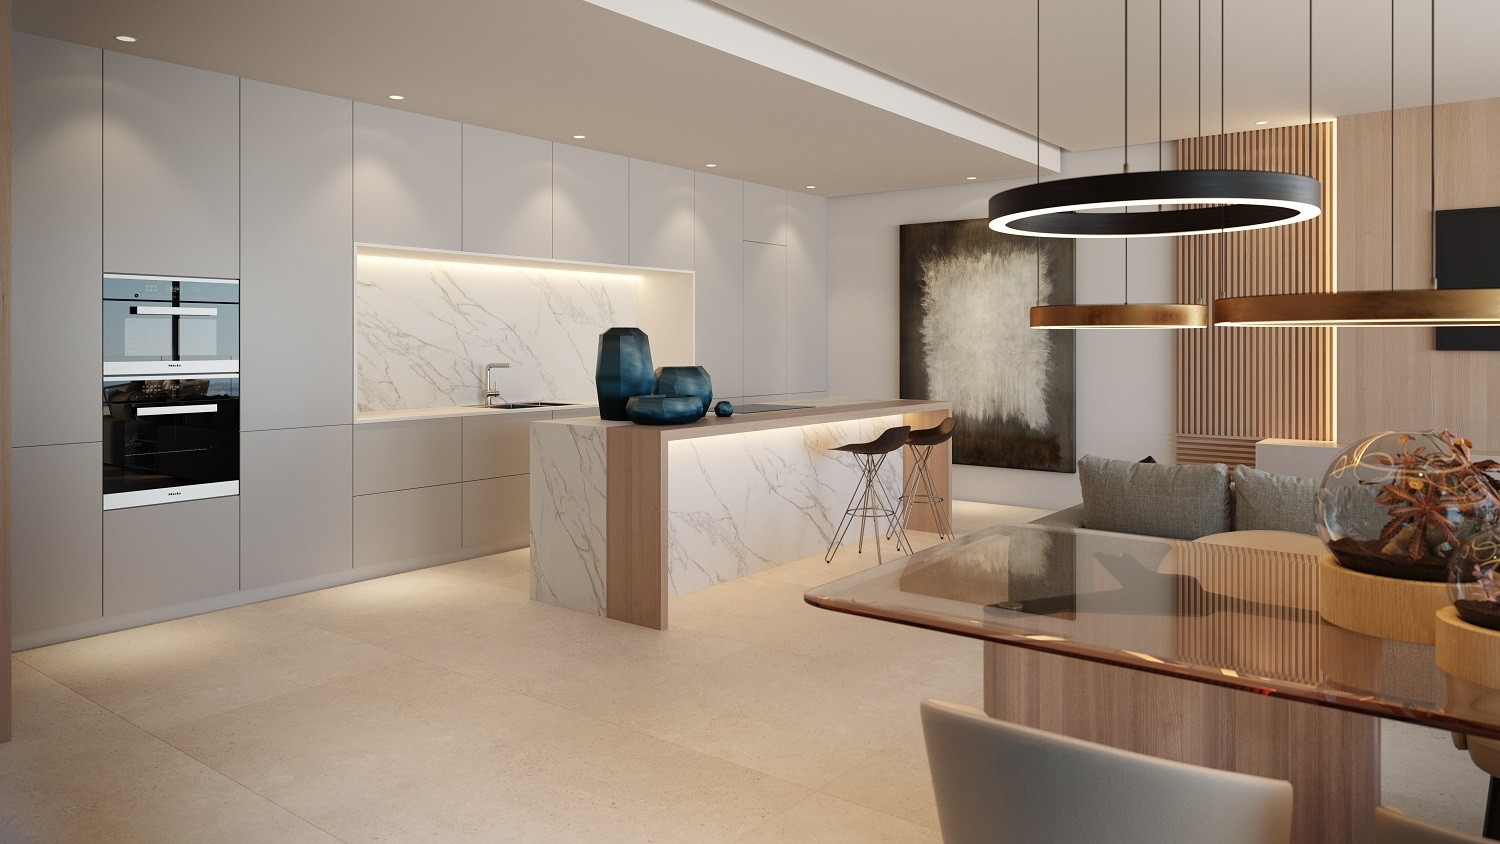 Qlistings - Boutique development of 49 luxury apartments in Marbella's Golden Mile Property Image